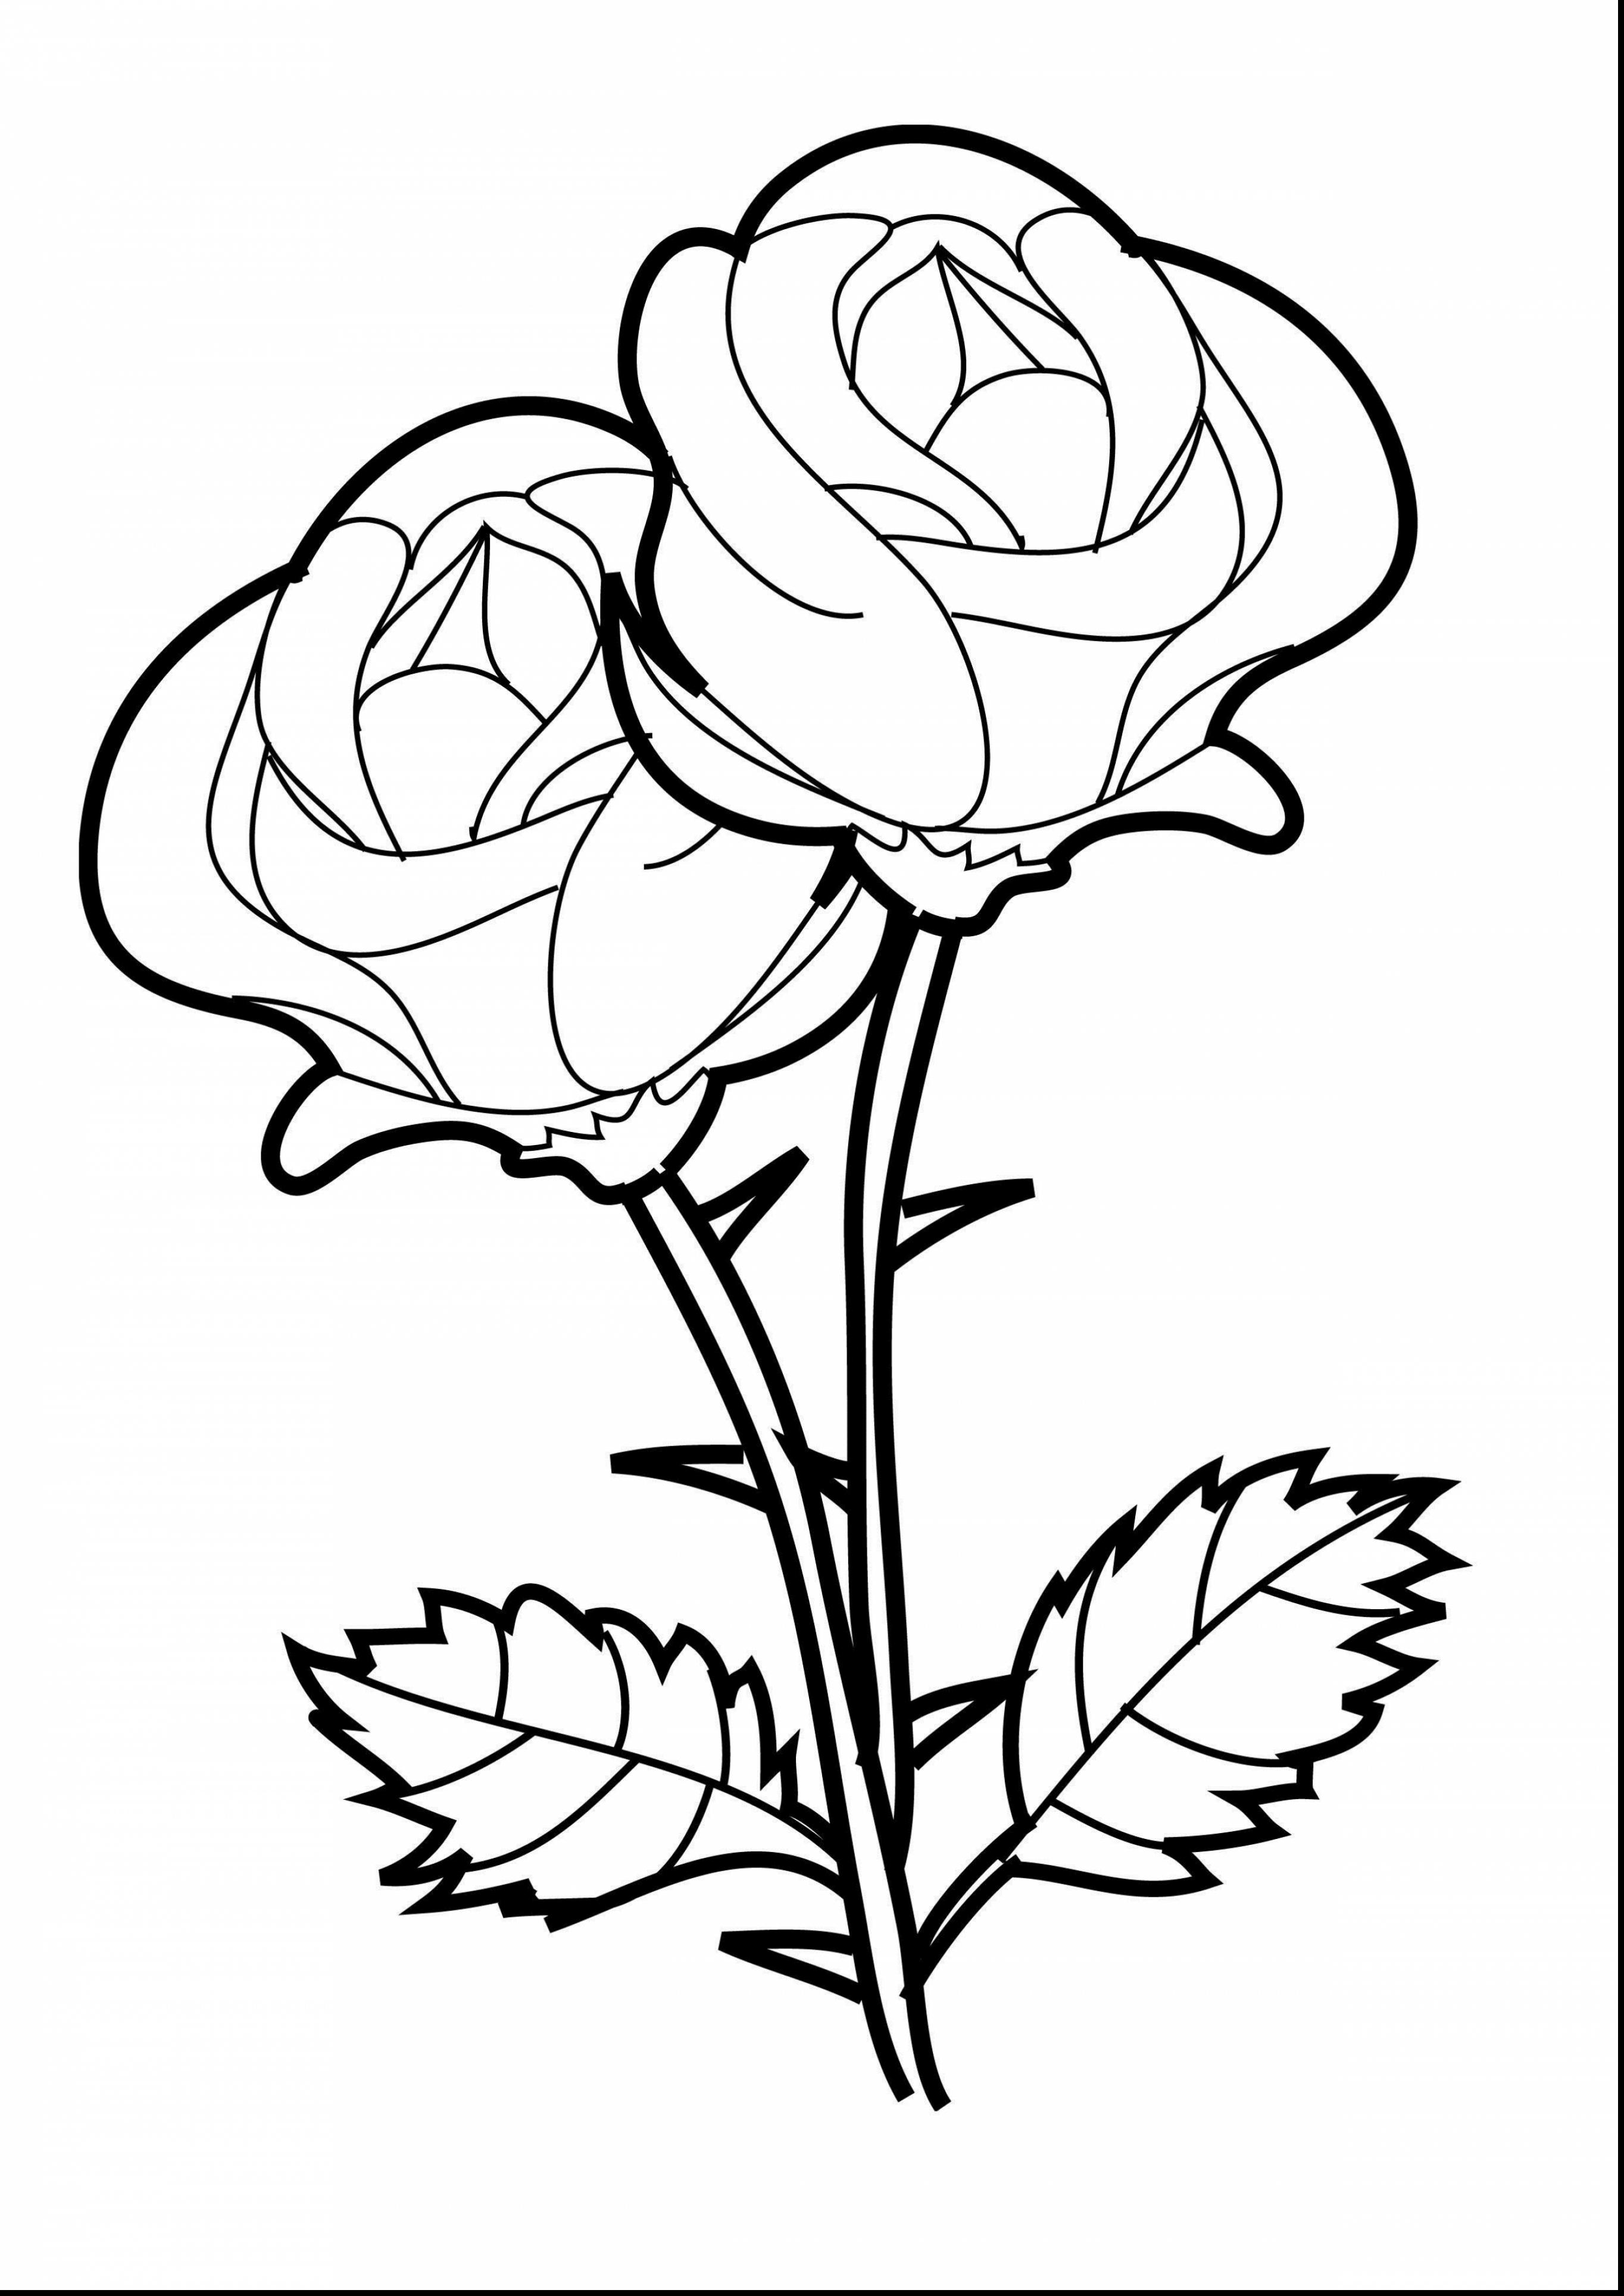 Rose Tattoo Coloring Pages - Bltidm